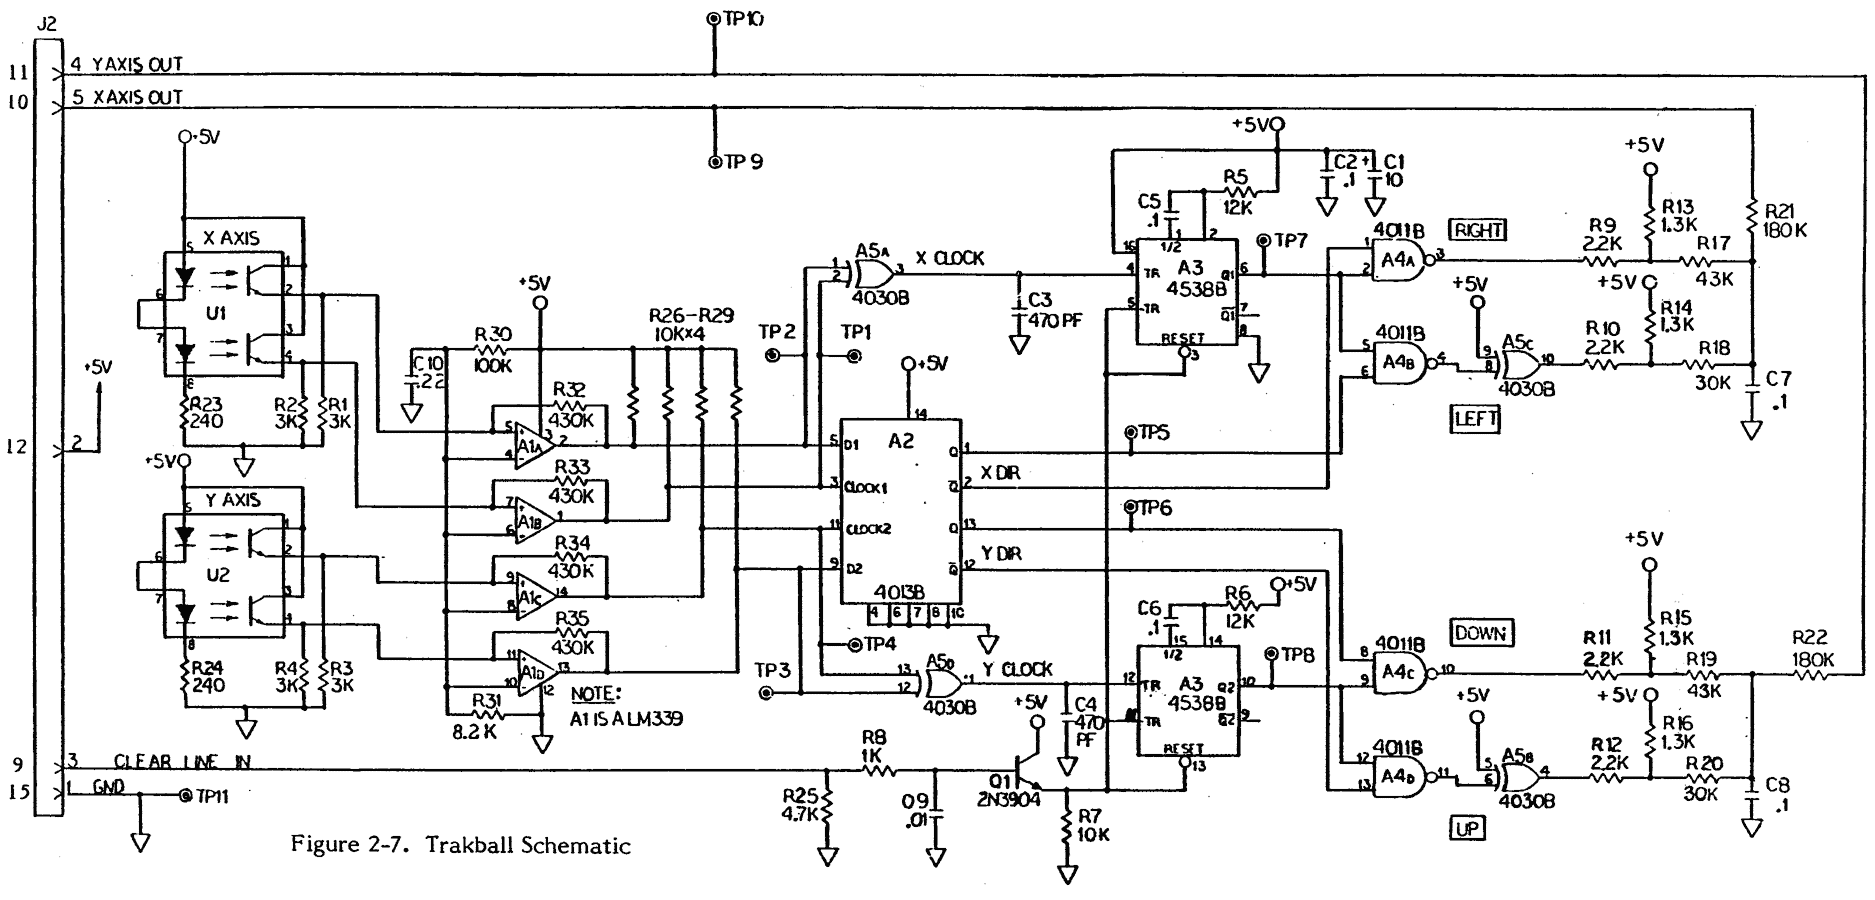 Trackball Mouse Schematic